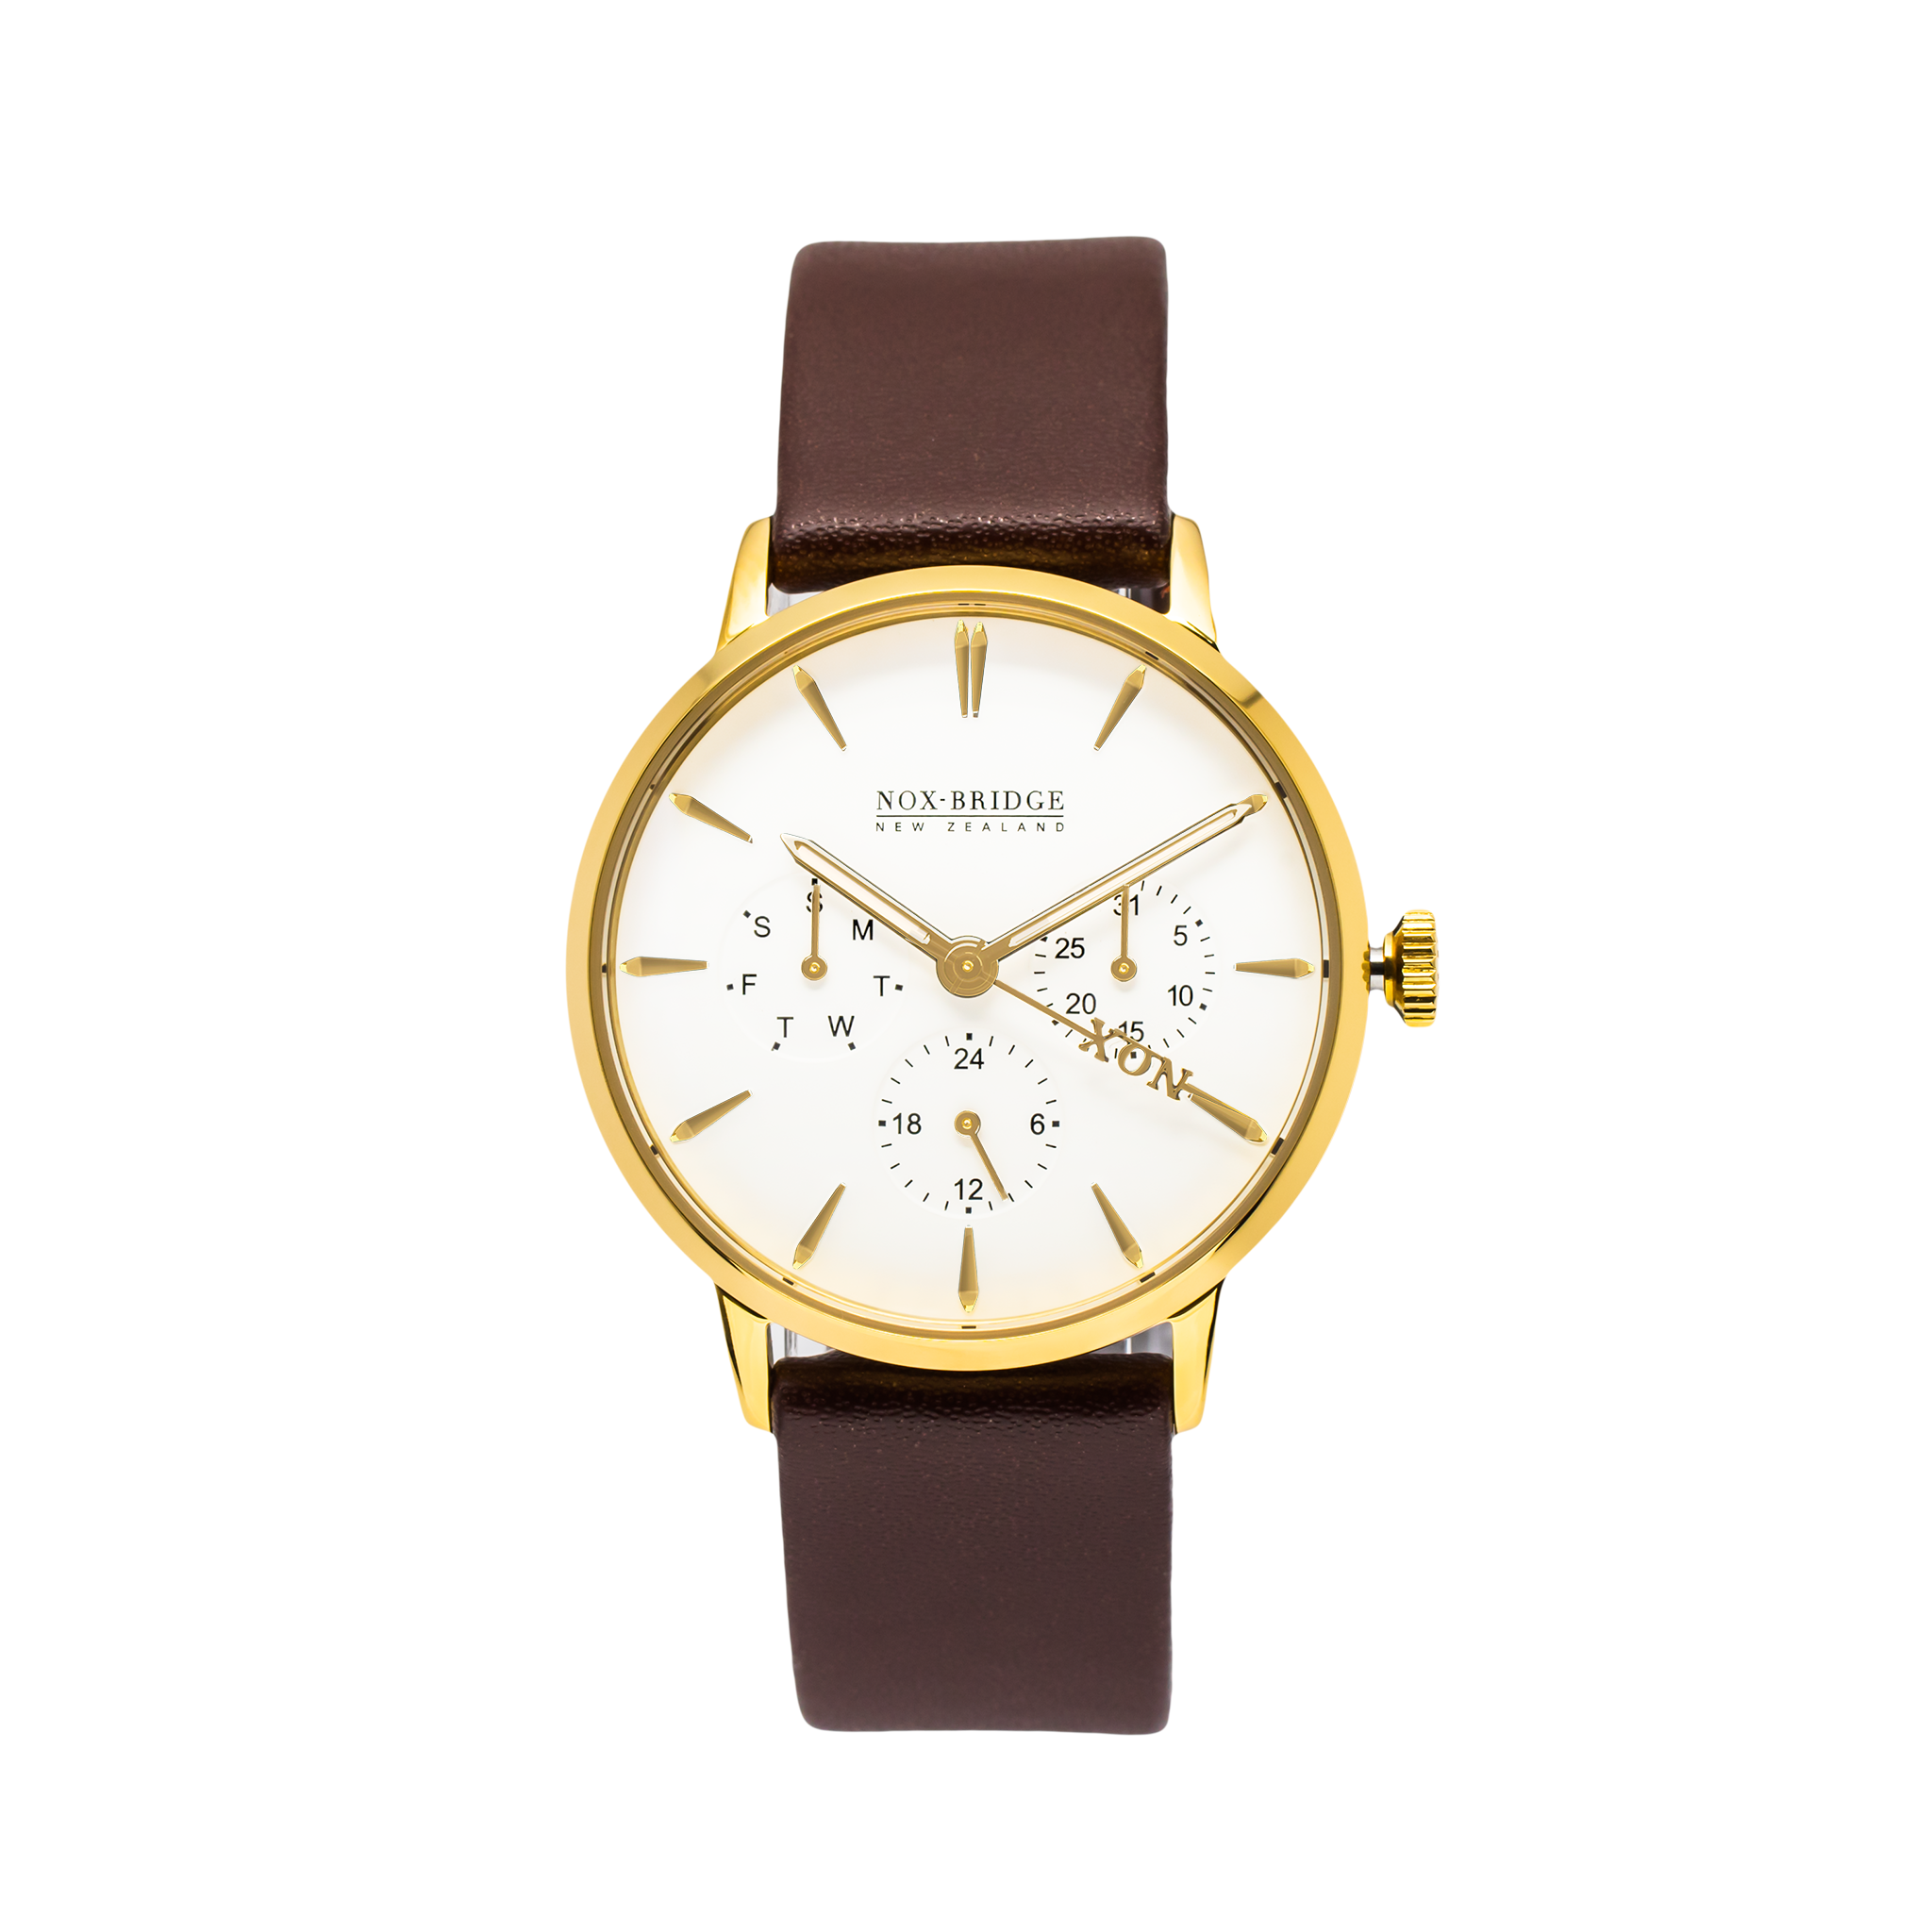 NOX-BRIDGE Classic Izar Vegan Brown Leather Strap White Dial 36MM Gold Watch